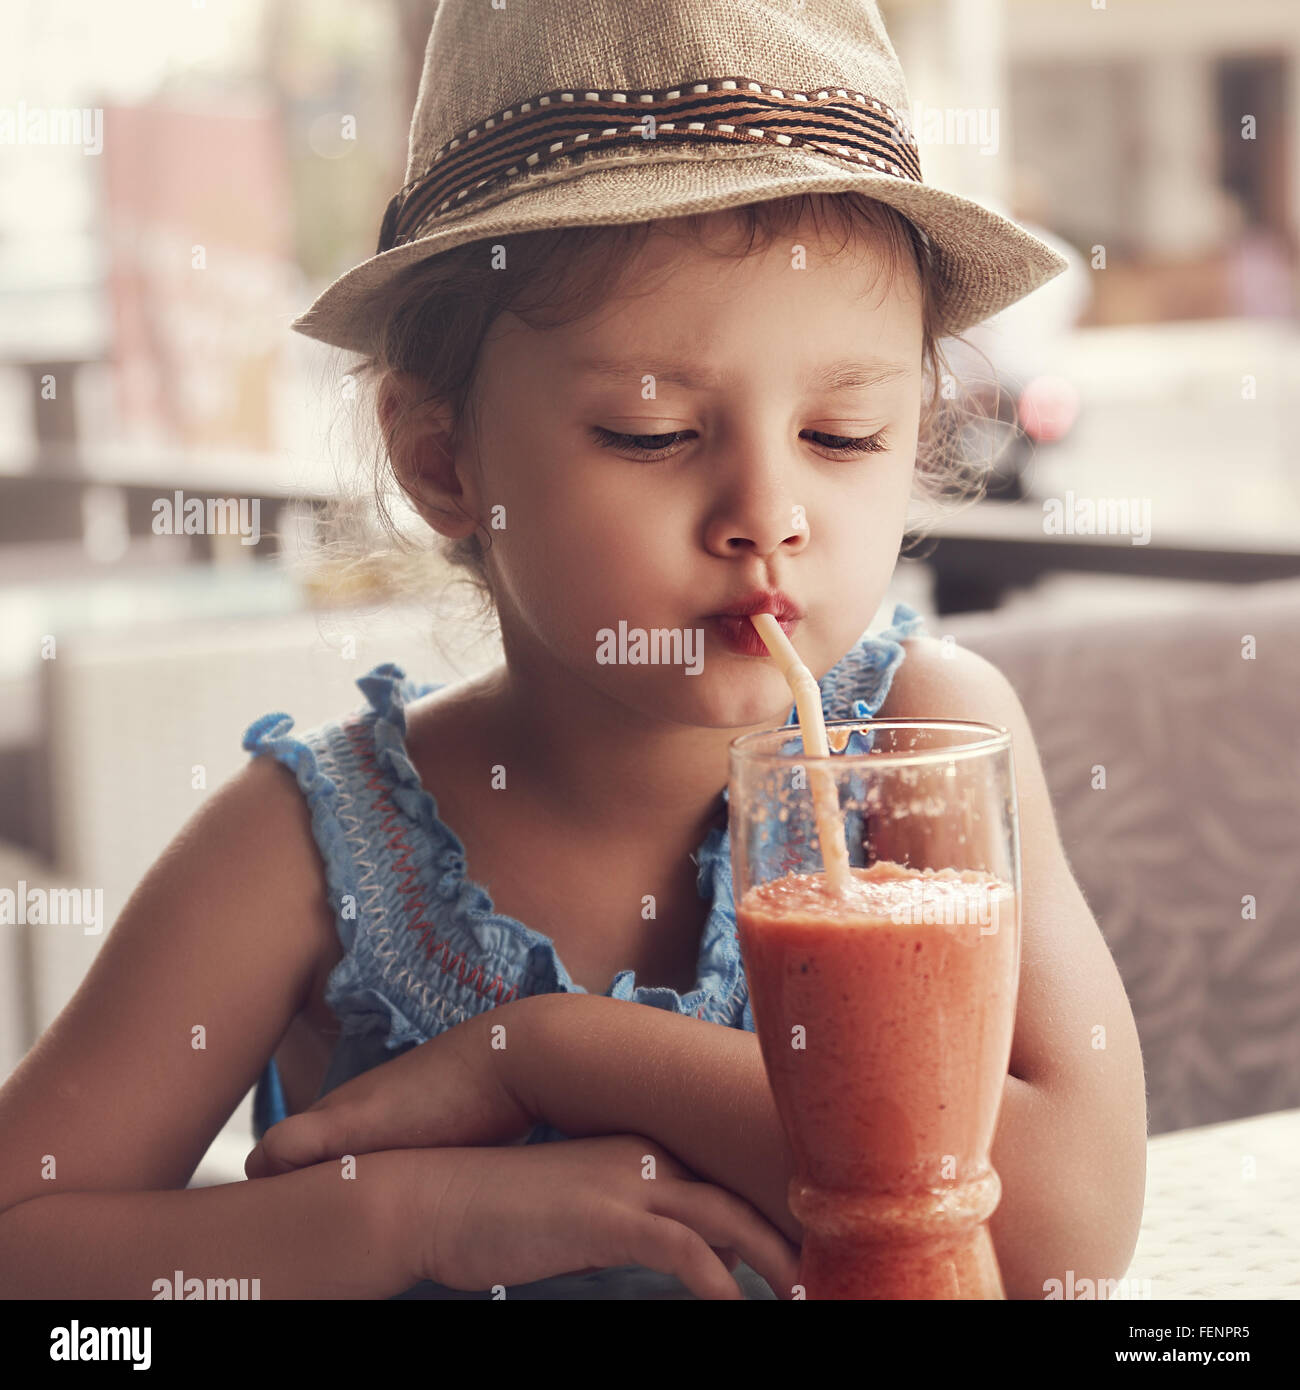 Fun kid girl in hat drinking smoothie juice from glass in street city cafe. Toned closeup portrait - Stock Image